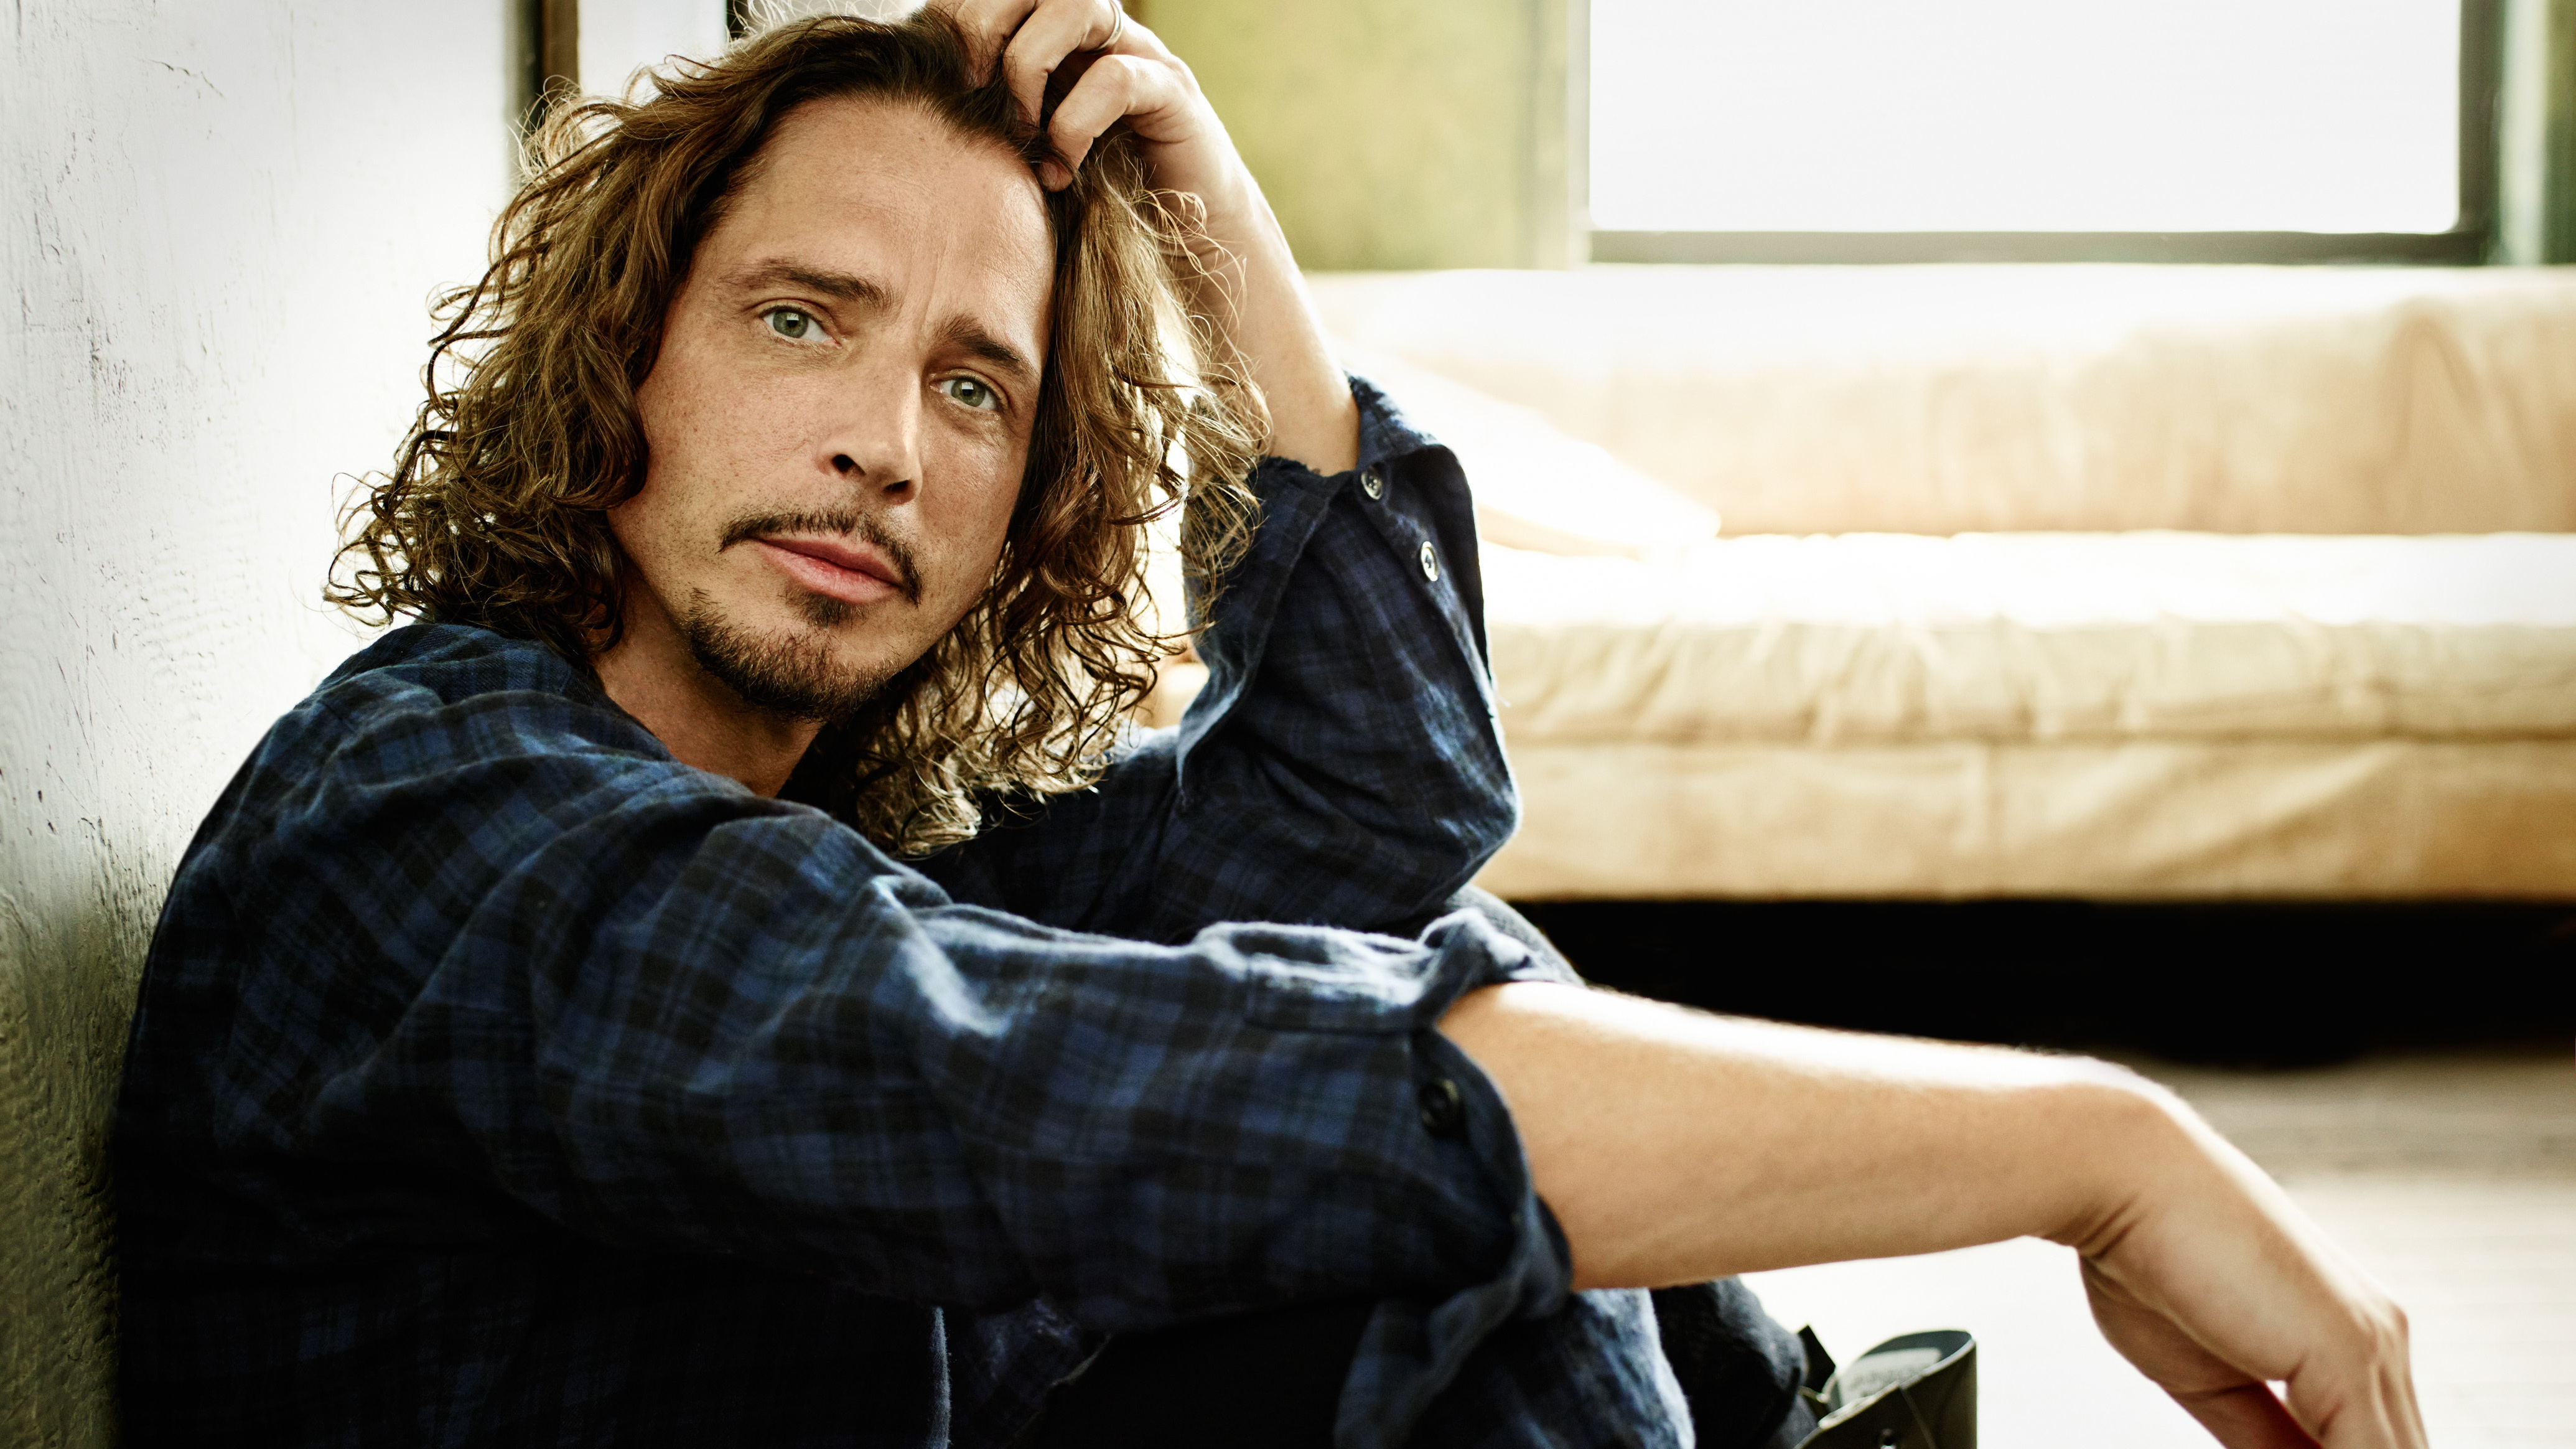 Grunge pioneer Chris Cornell has died at 52